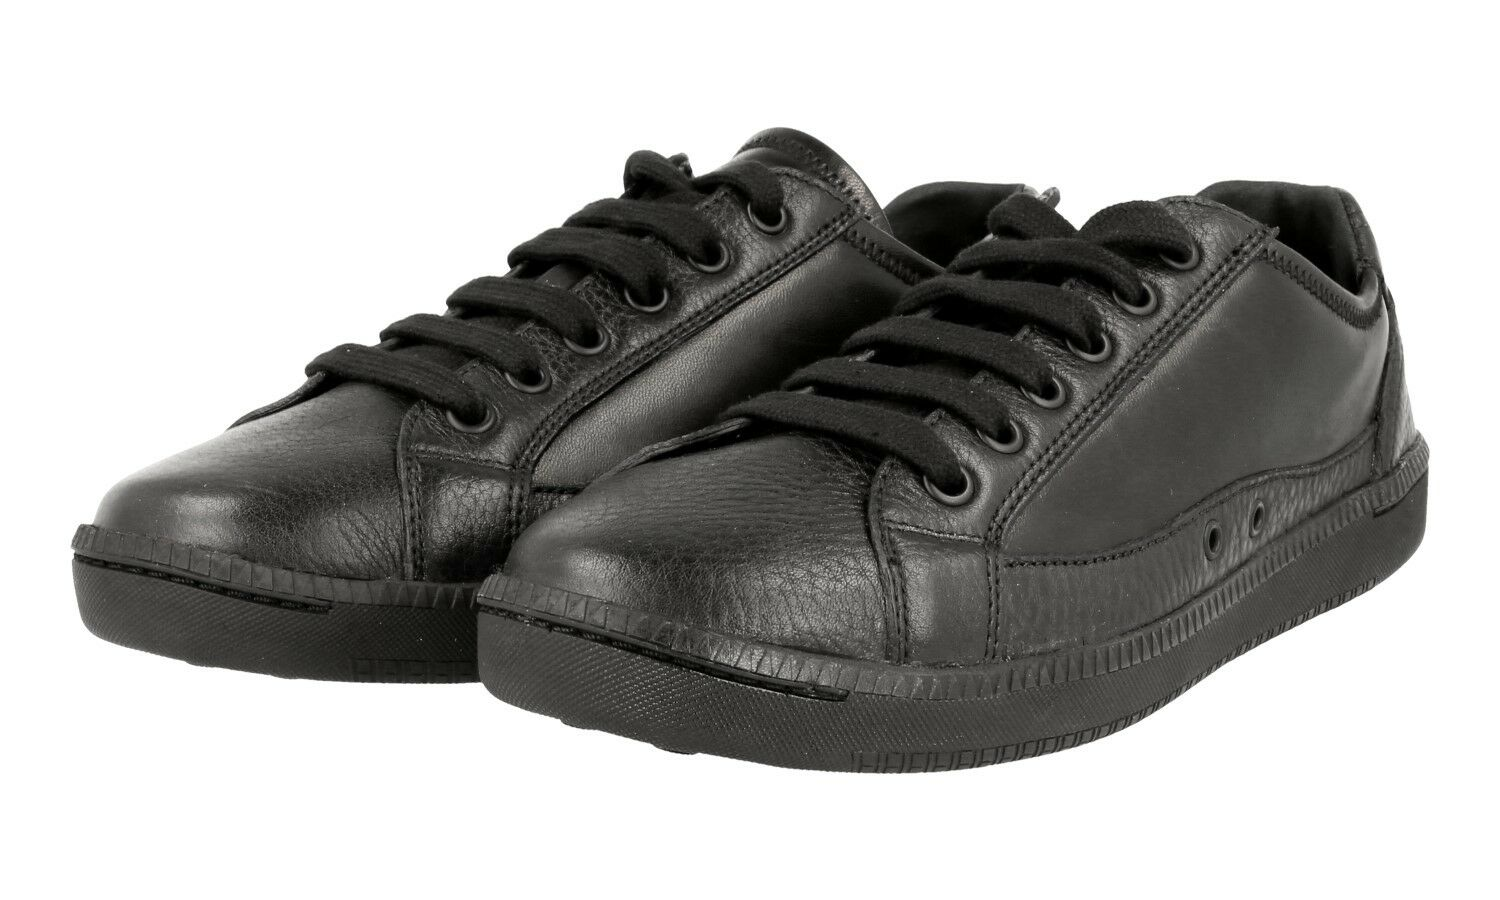 AUTH LUXURY CAR SHOE BY PRADA SNEAKERS SHOES KDE66K BLACK 38,5 39 UK 5.5